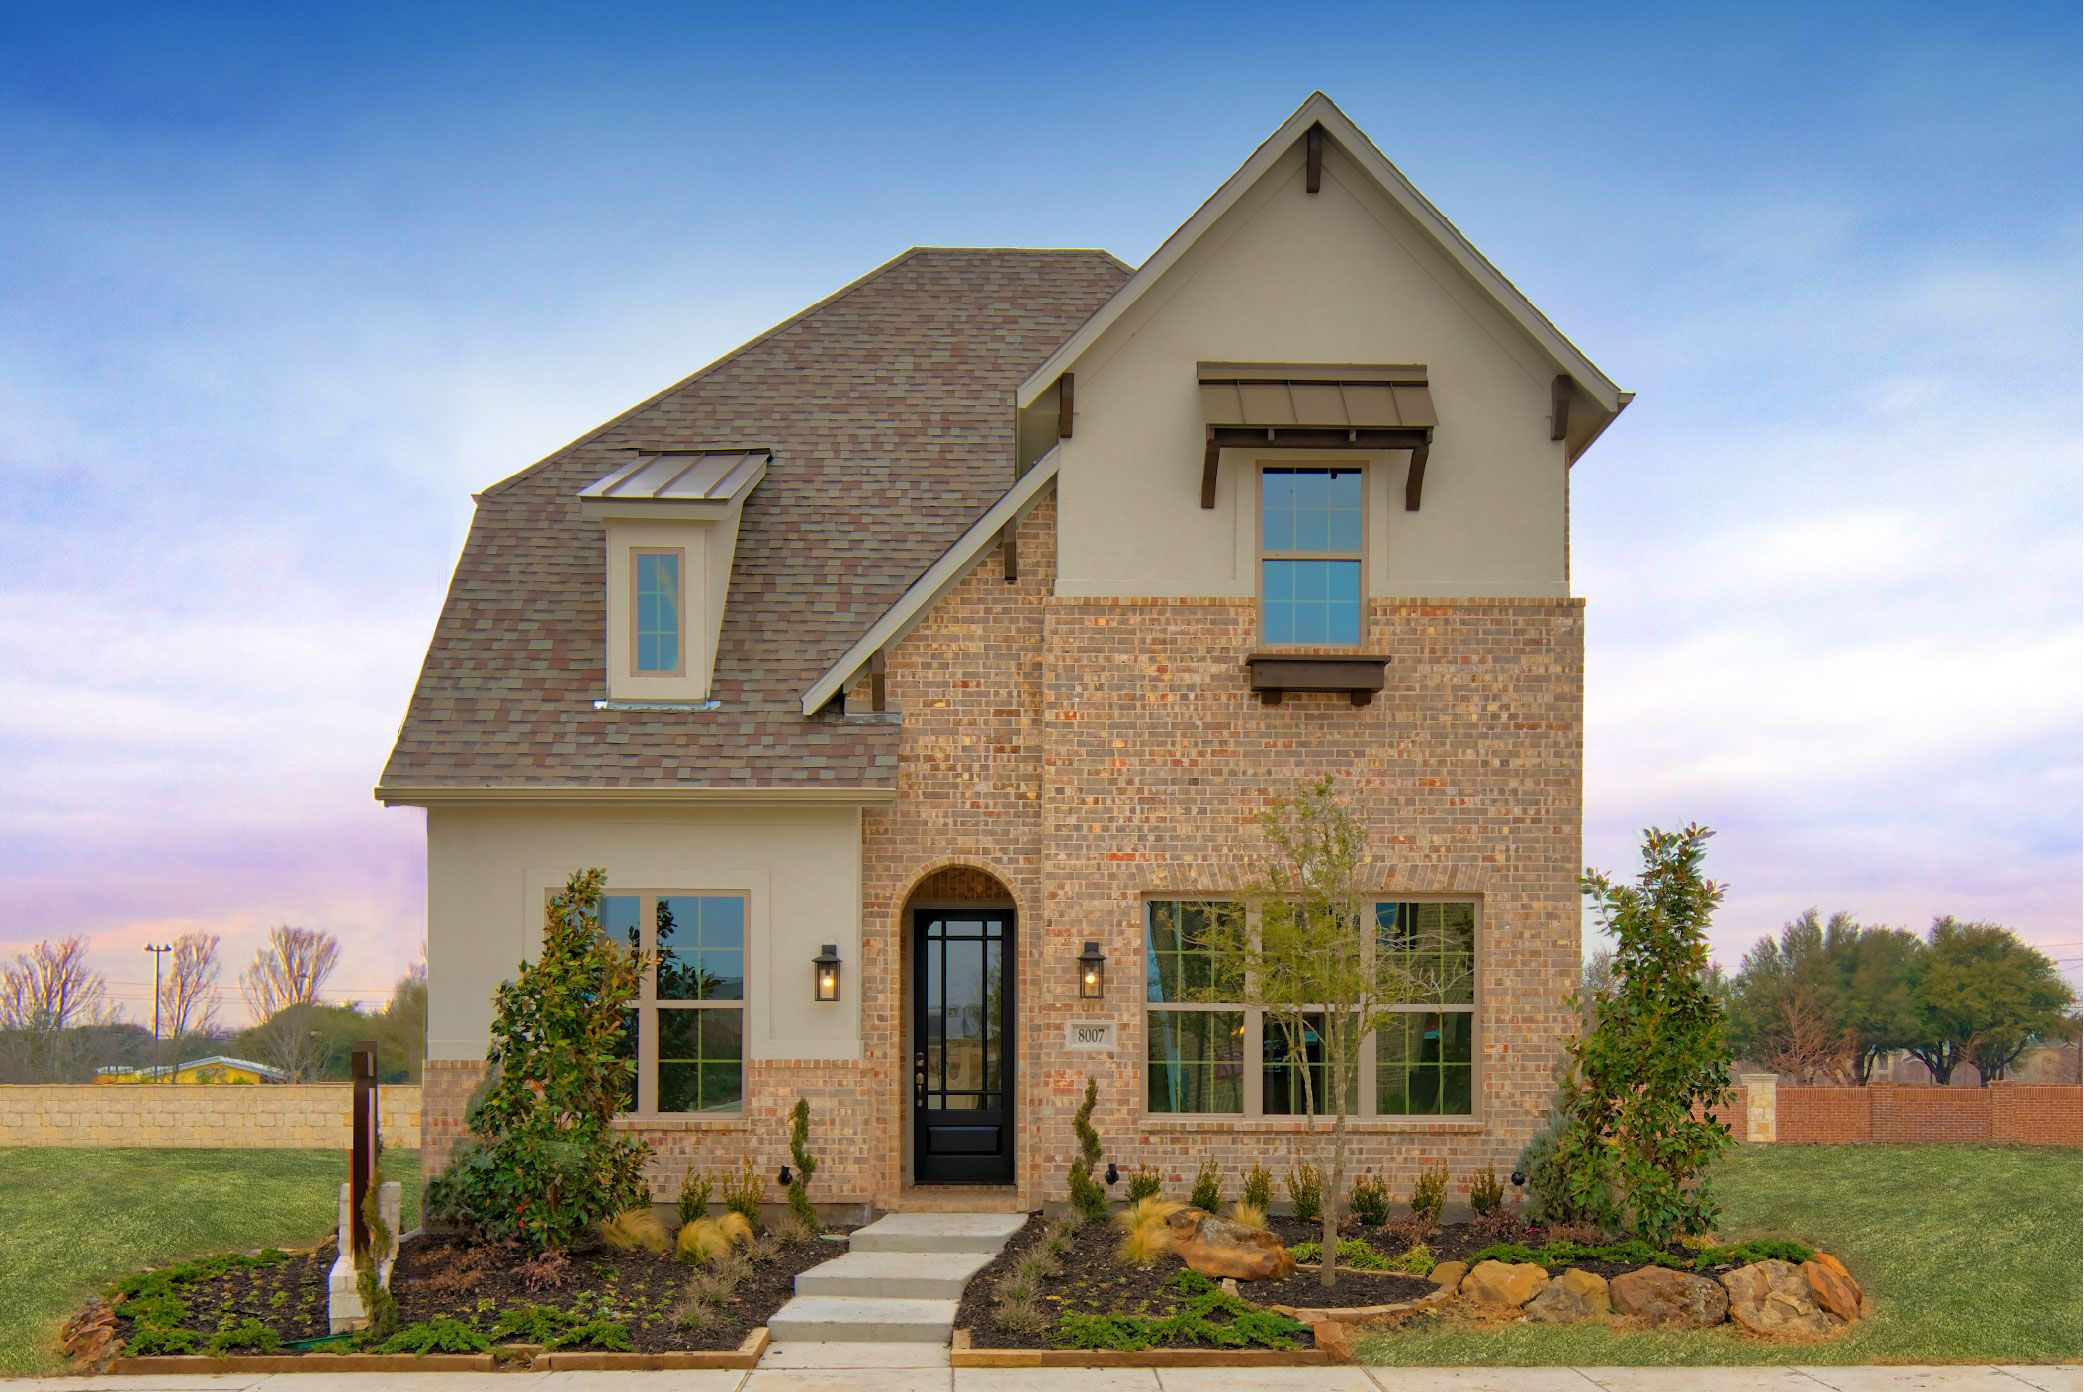 40 Megatel Homes Communities in 75223 | NewHomeSource